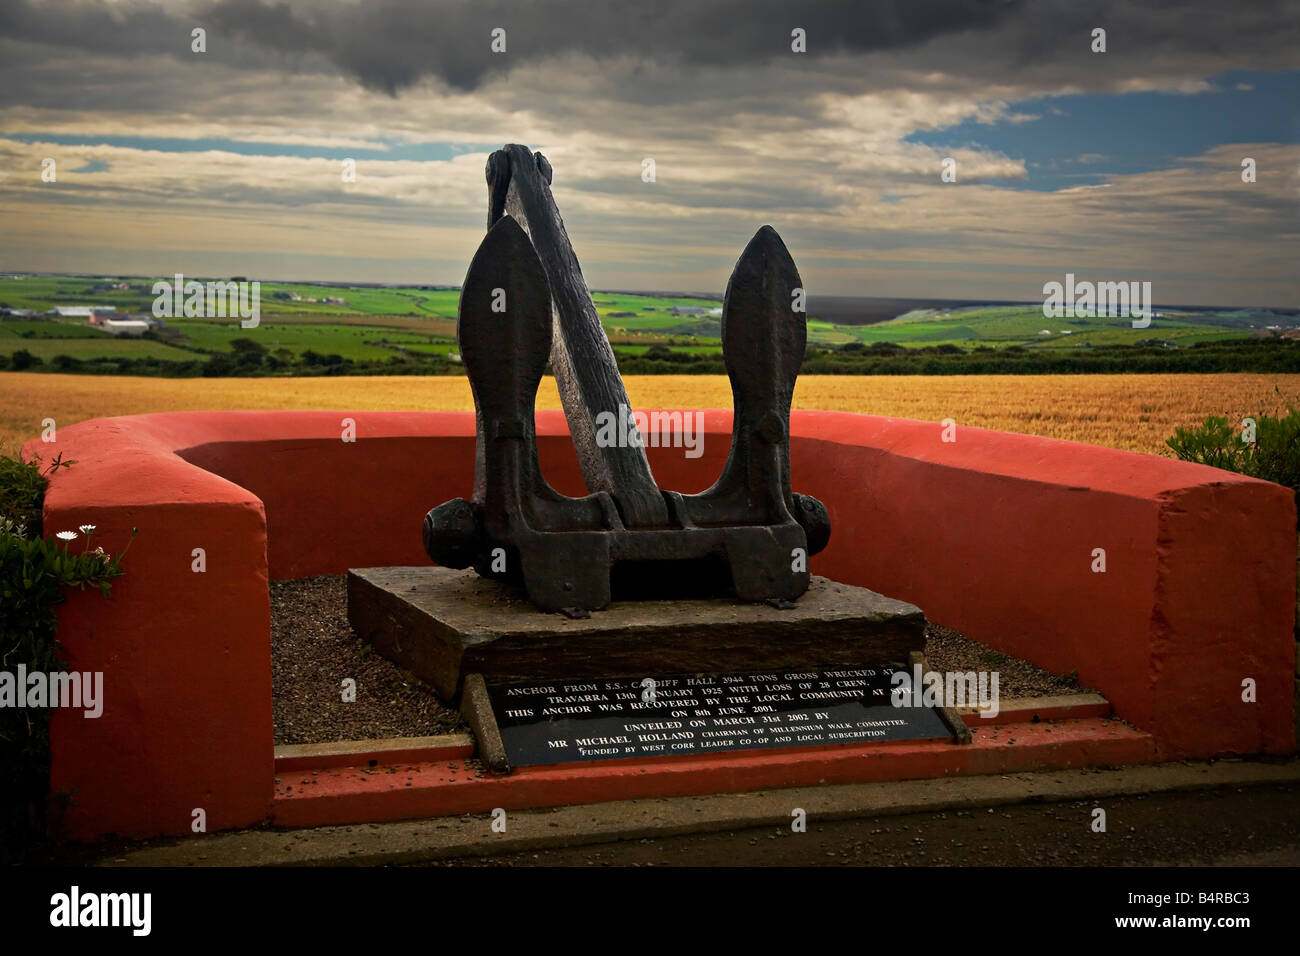 S.S. Cardiff Hall Anchor in Butlerstown West Cork Ireland - Stock Image